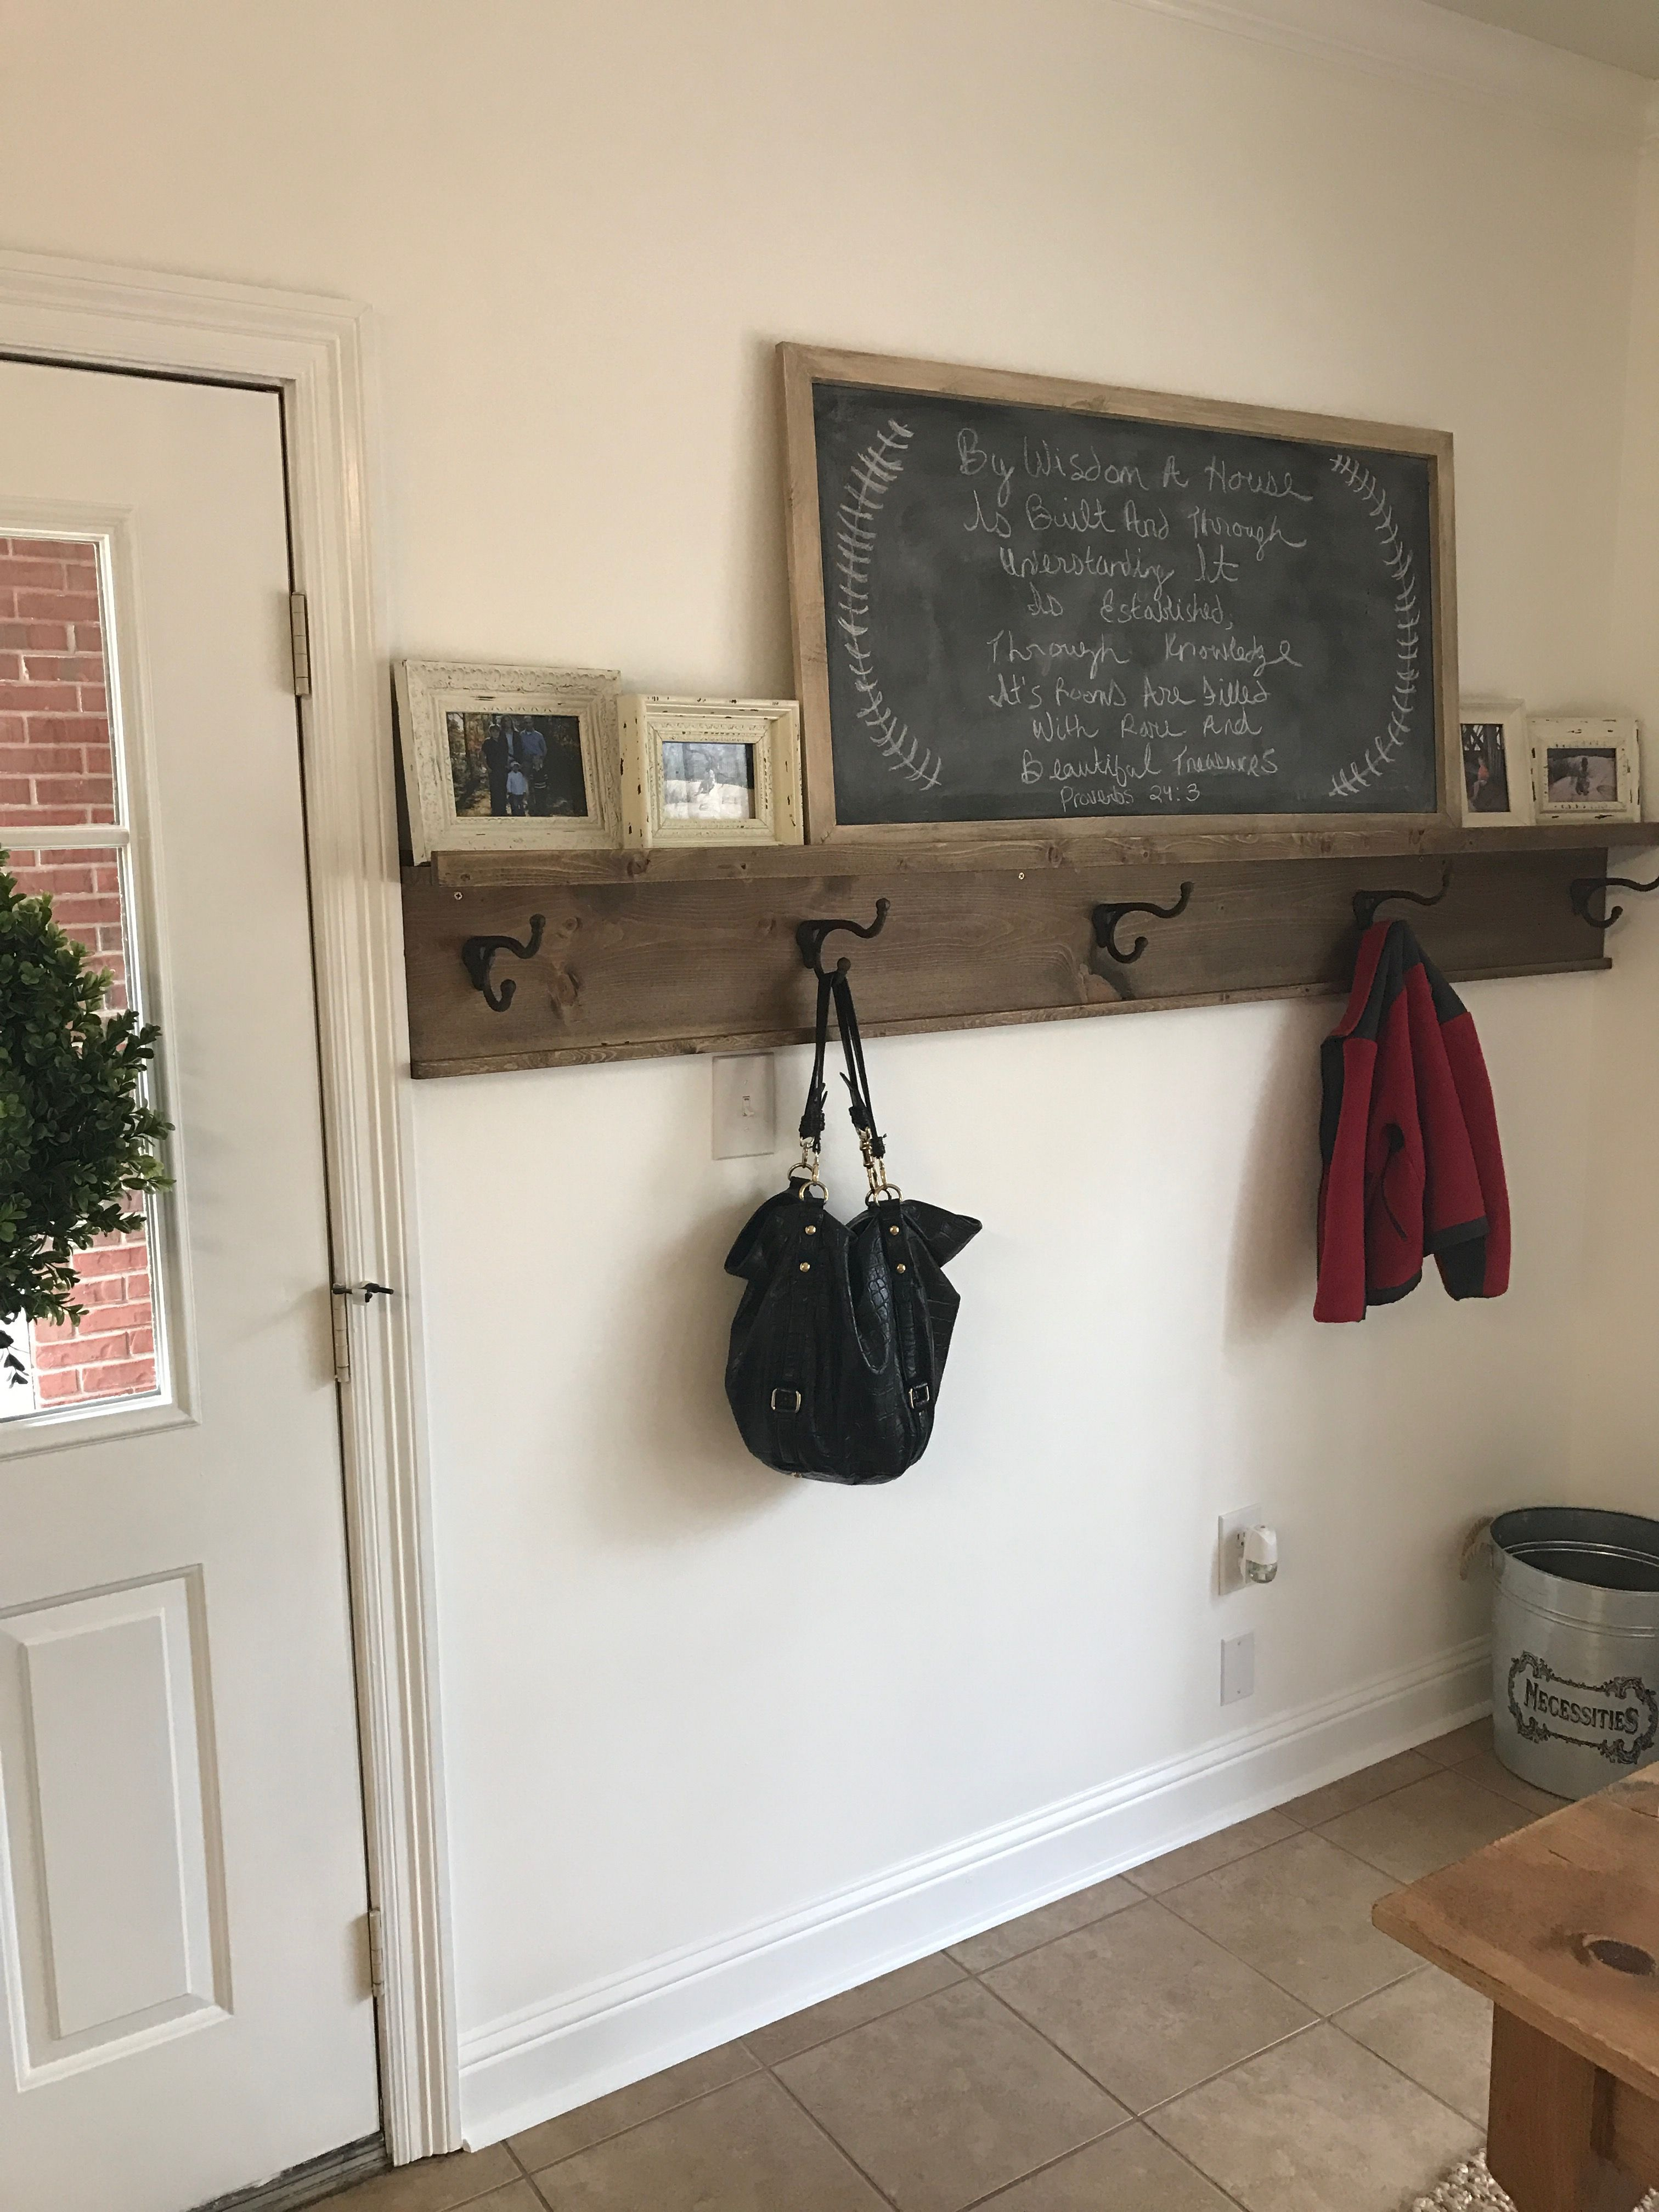 diy entryway coat rack with ture ledge shelf needed something floating and hang coats backpacks etc the back door this fits bill perfectly invisible wall brackets ikea thin wal